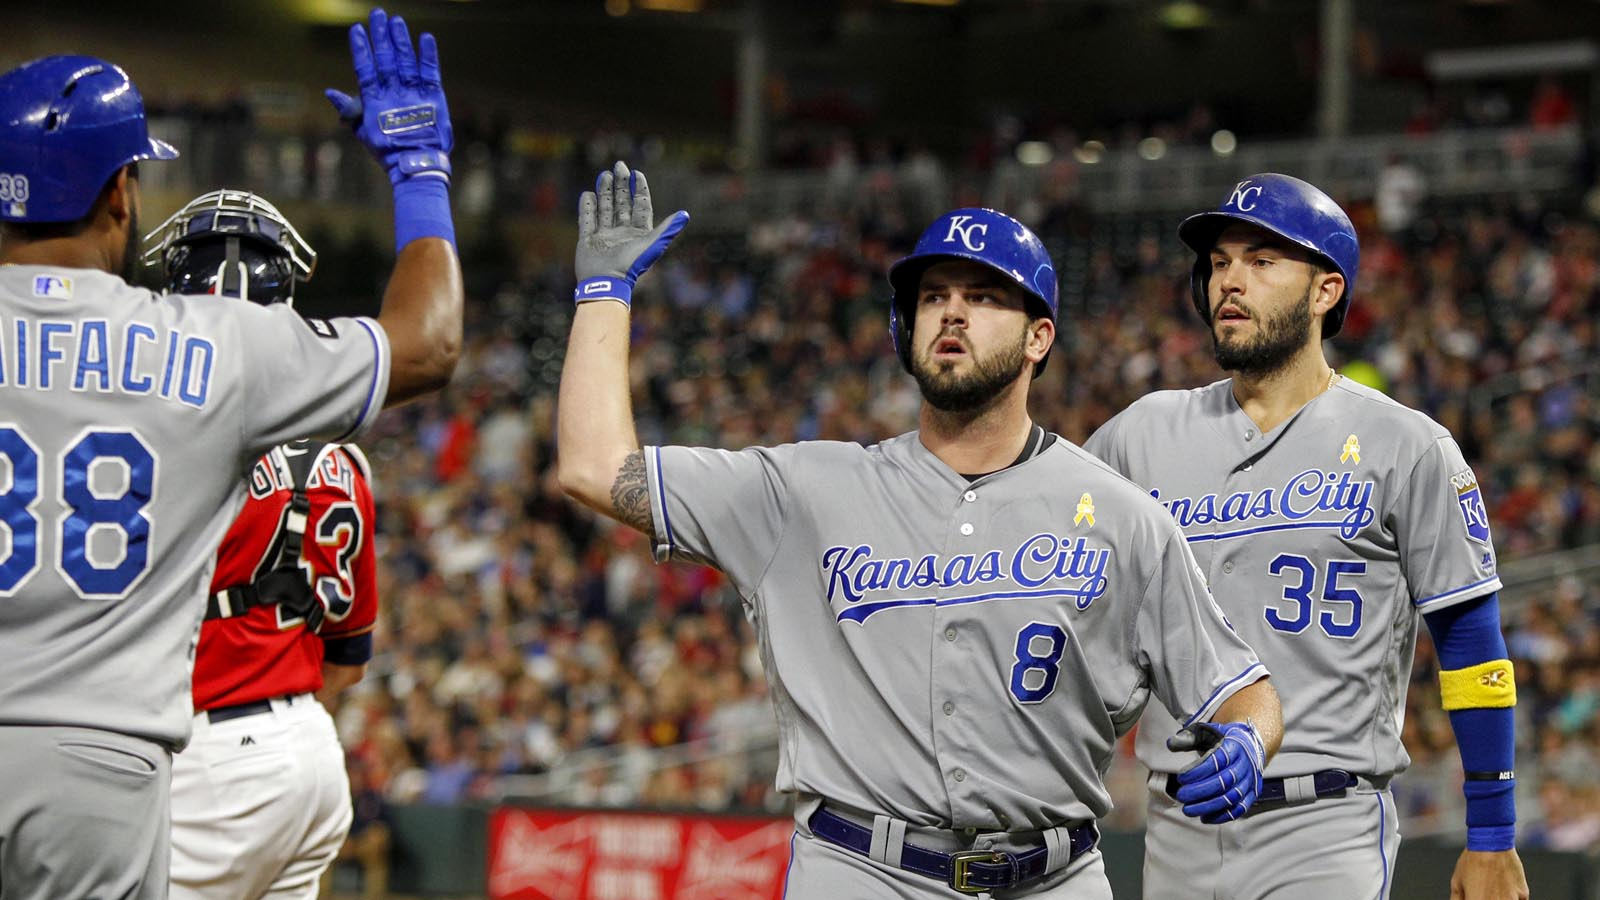 Moustakas ties Balboni's record as Royals defeat Twins 7-6